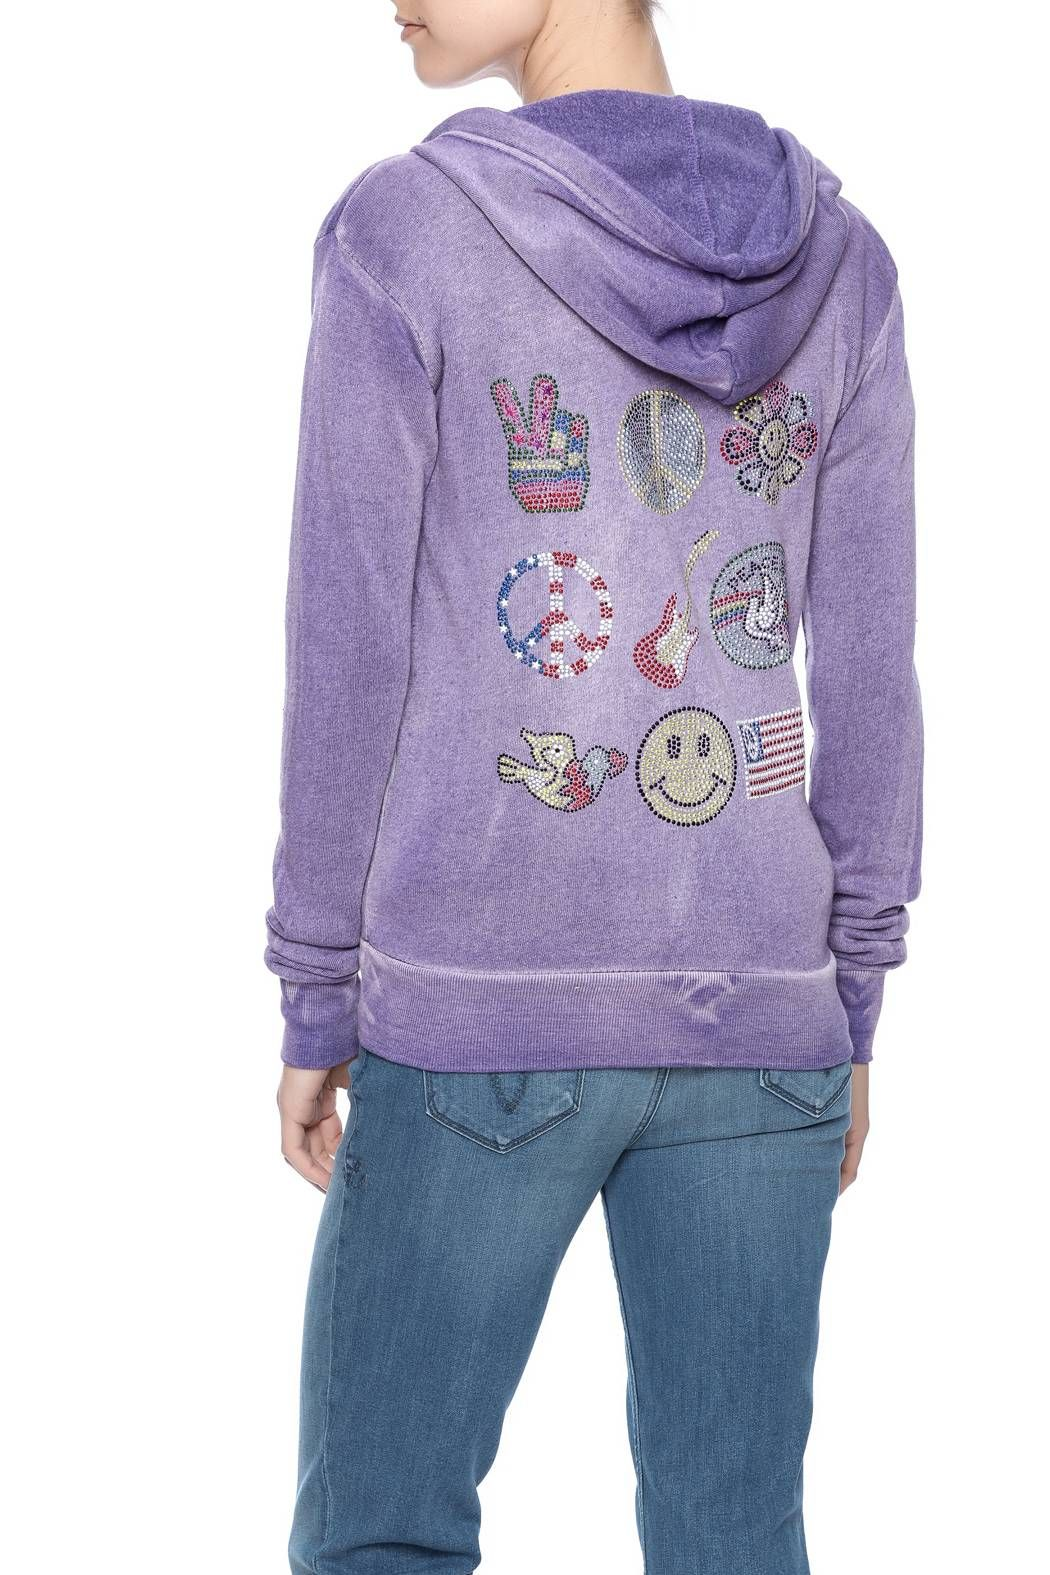 5fcfdef0b Super soft mineral wash zip hoodie with American Girl applique on back.  Features hood and